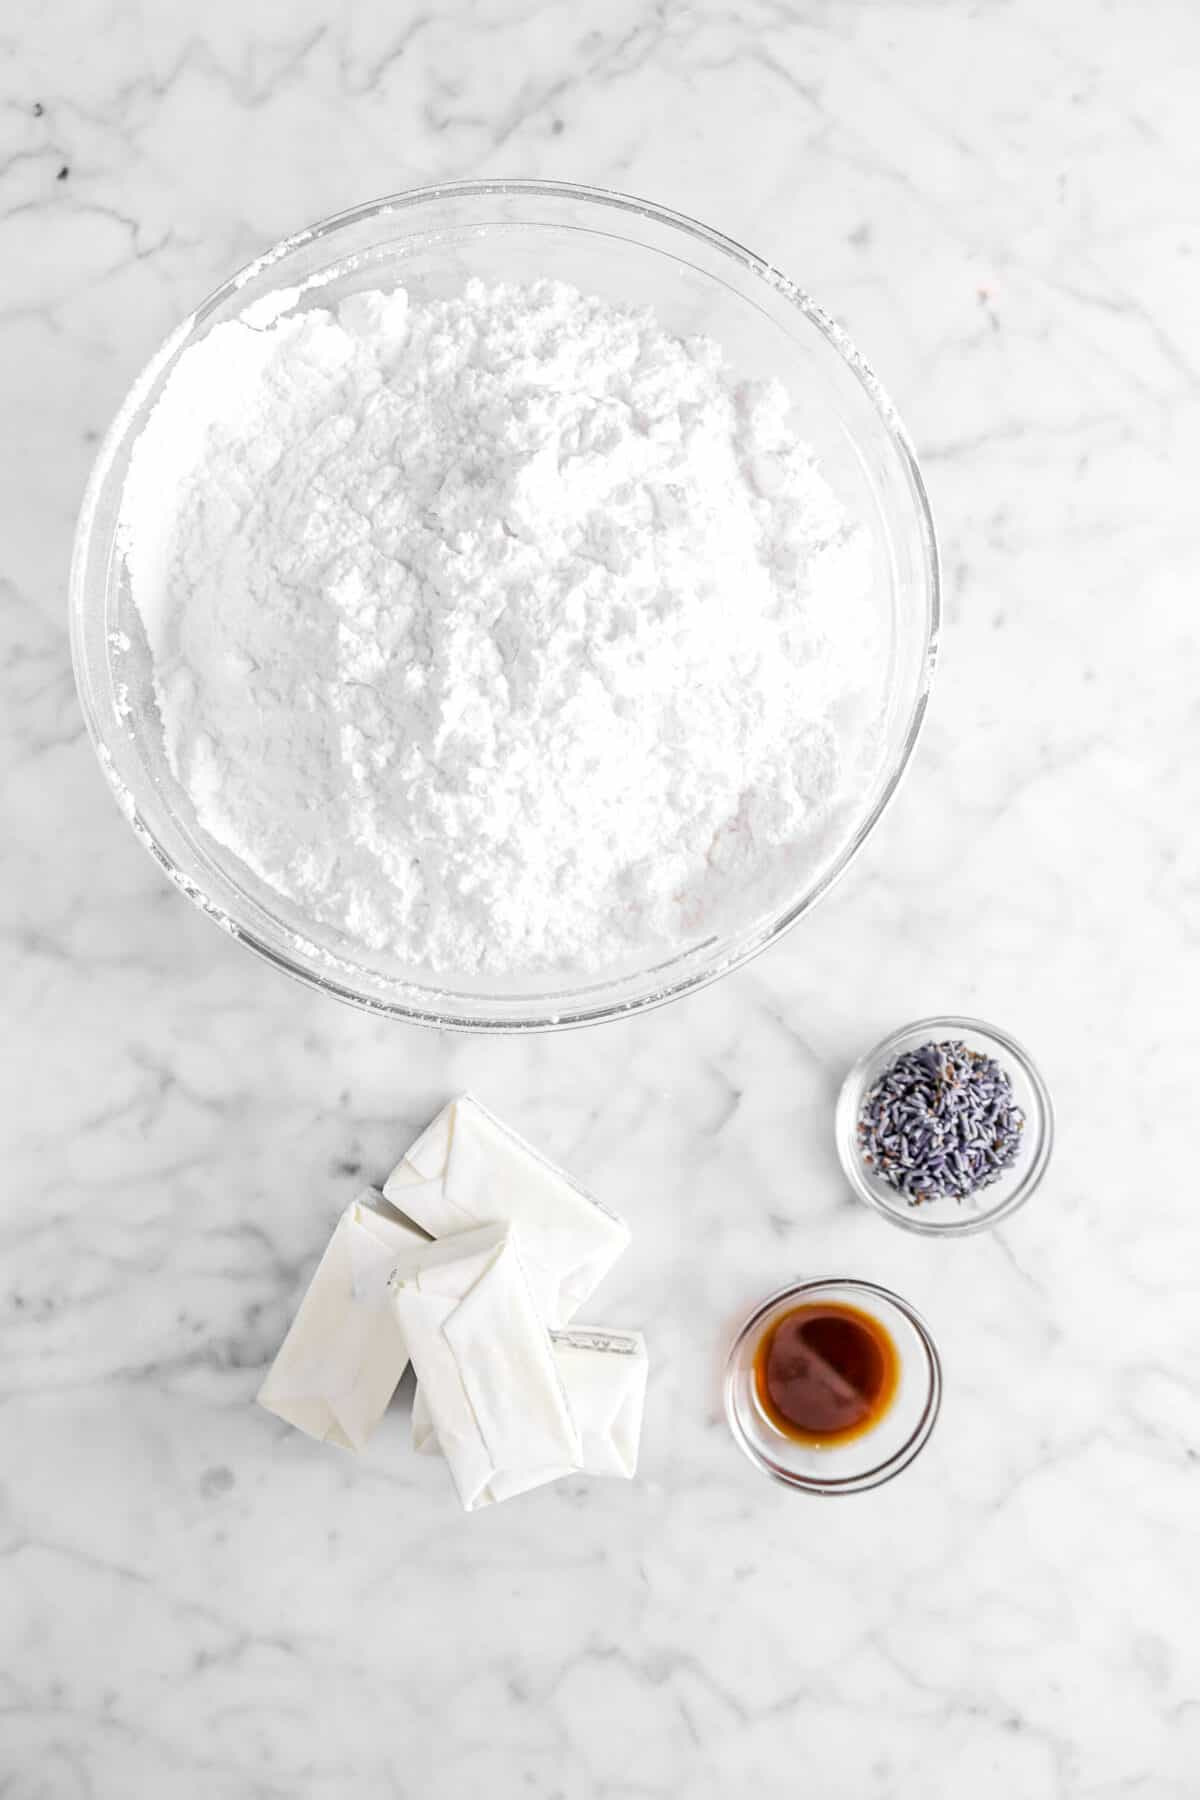 powdered sugar, lavender, butter, and vanilla in glass bowls